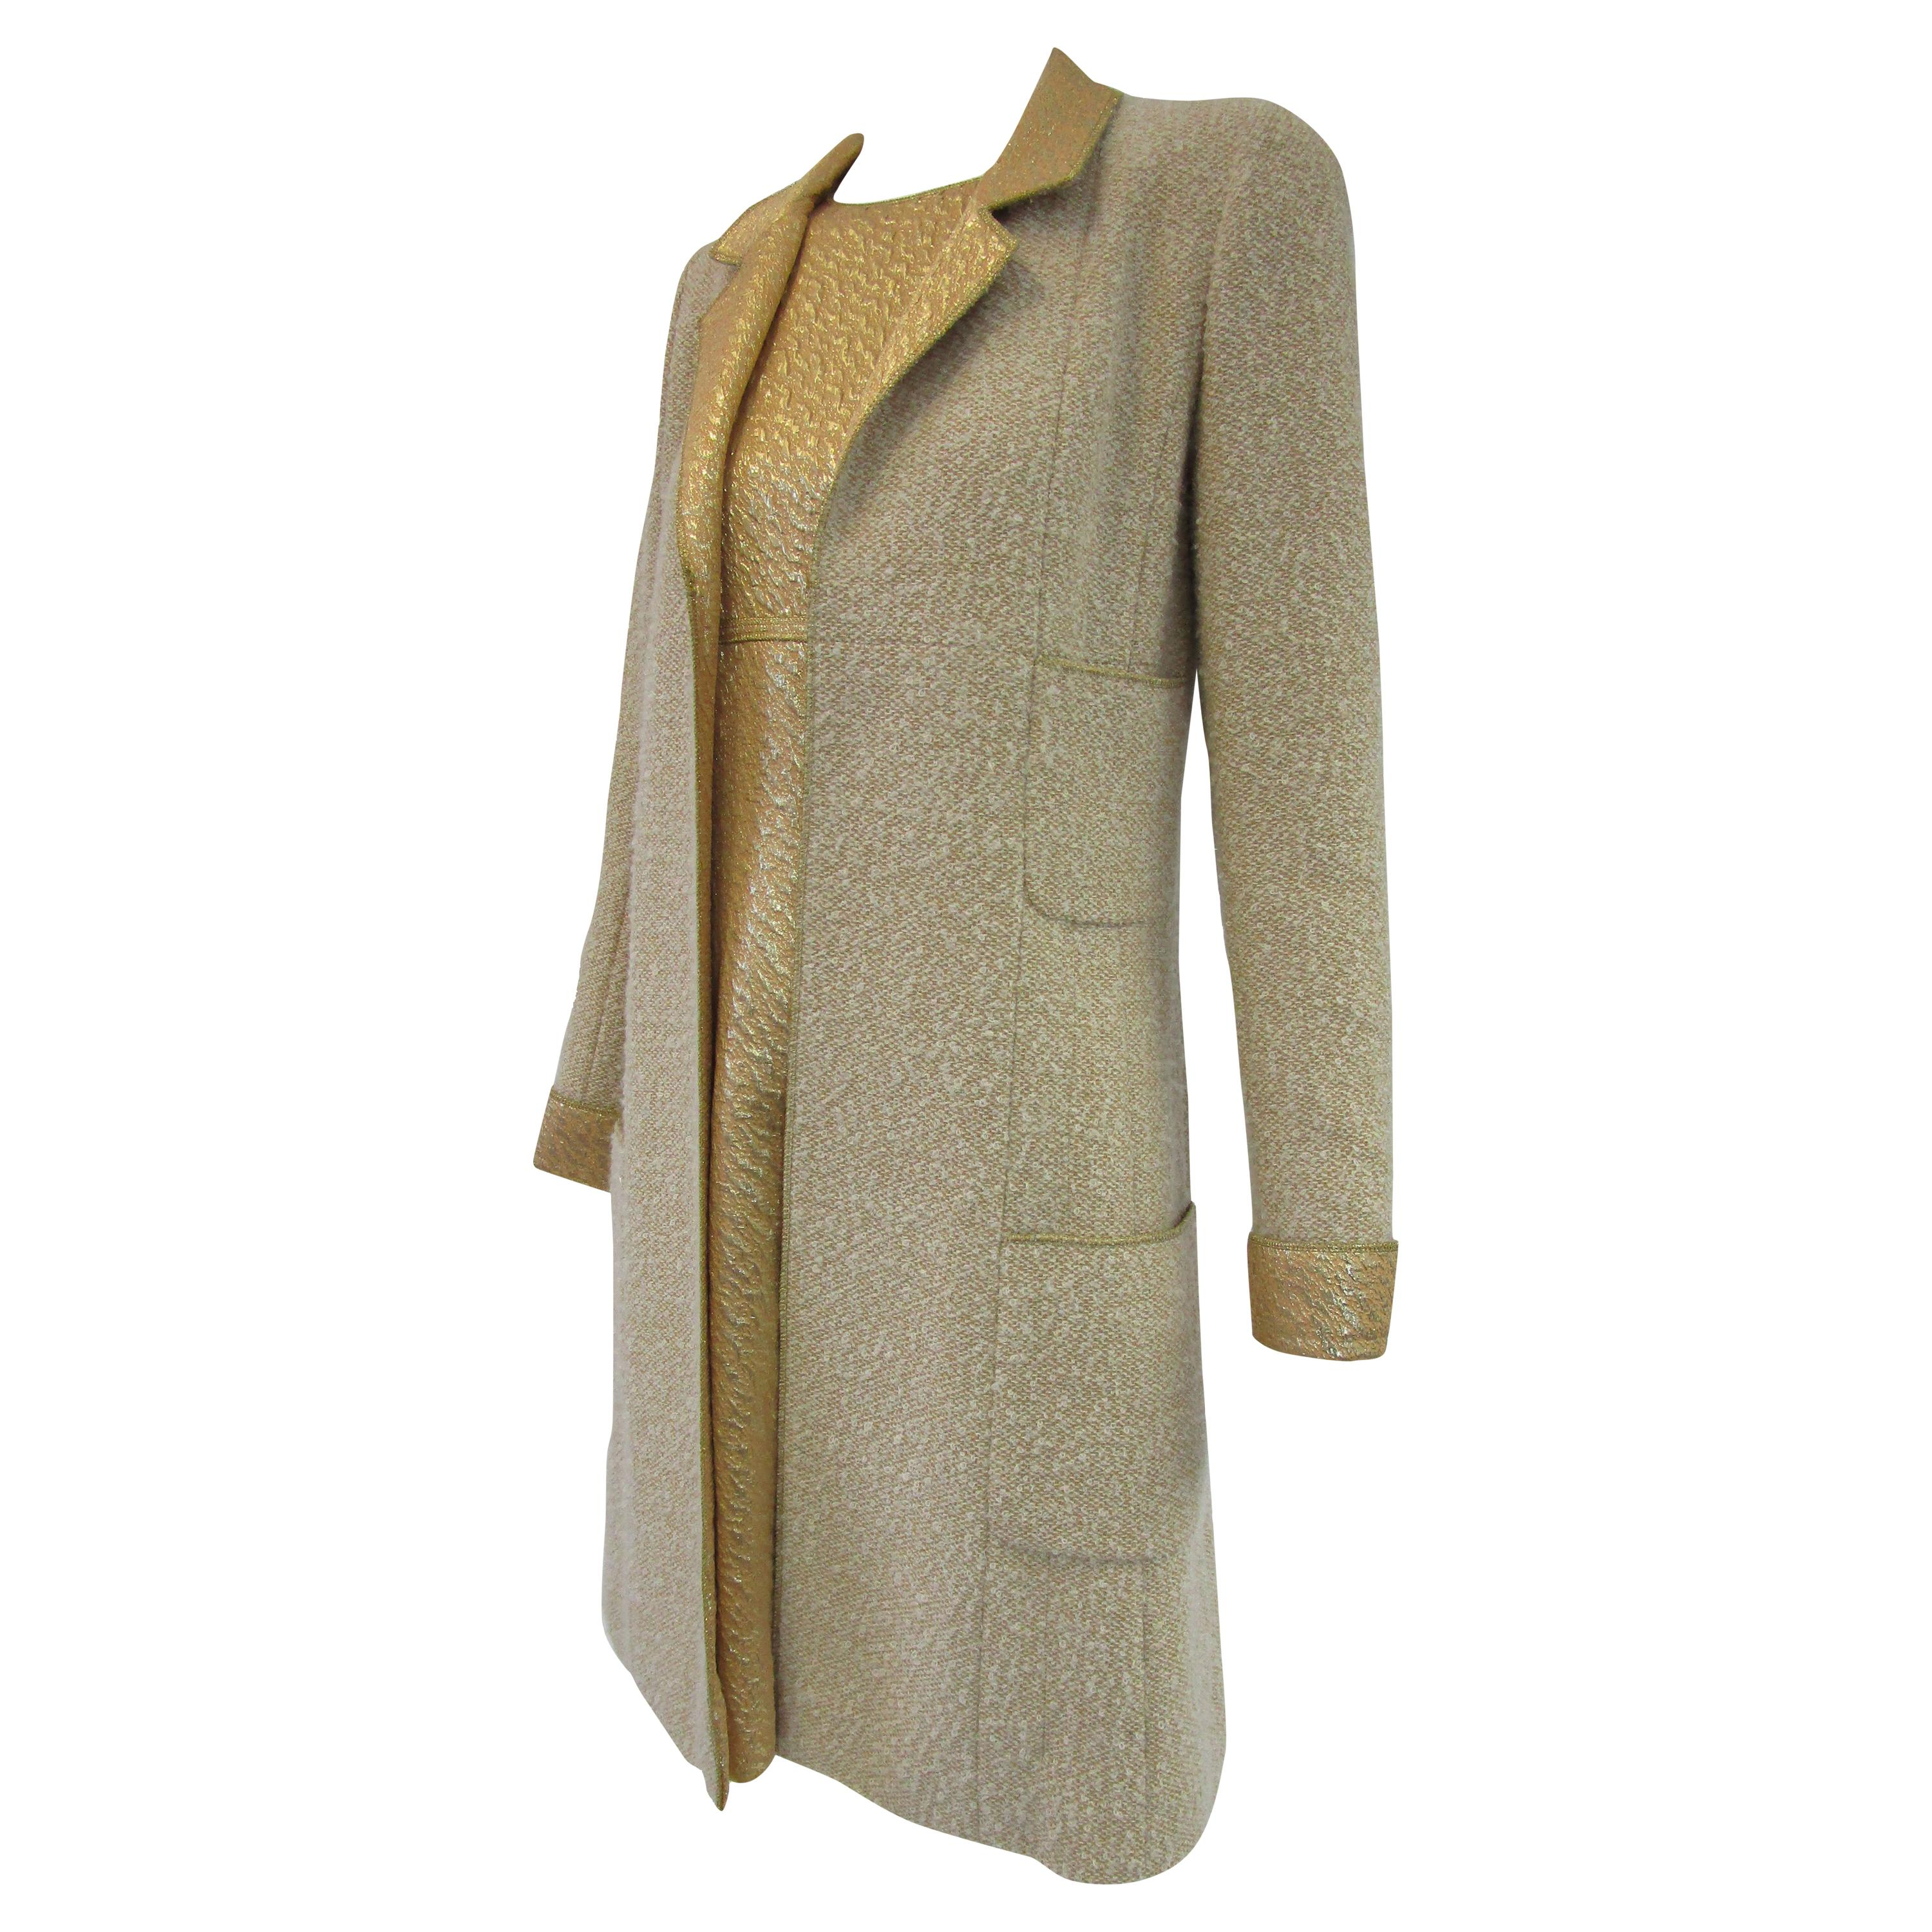 1996 Chanel by Lagerfeld Golden Boucle and Lame Shift Dress and Coat